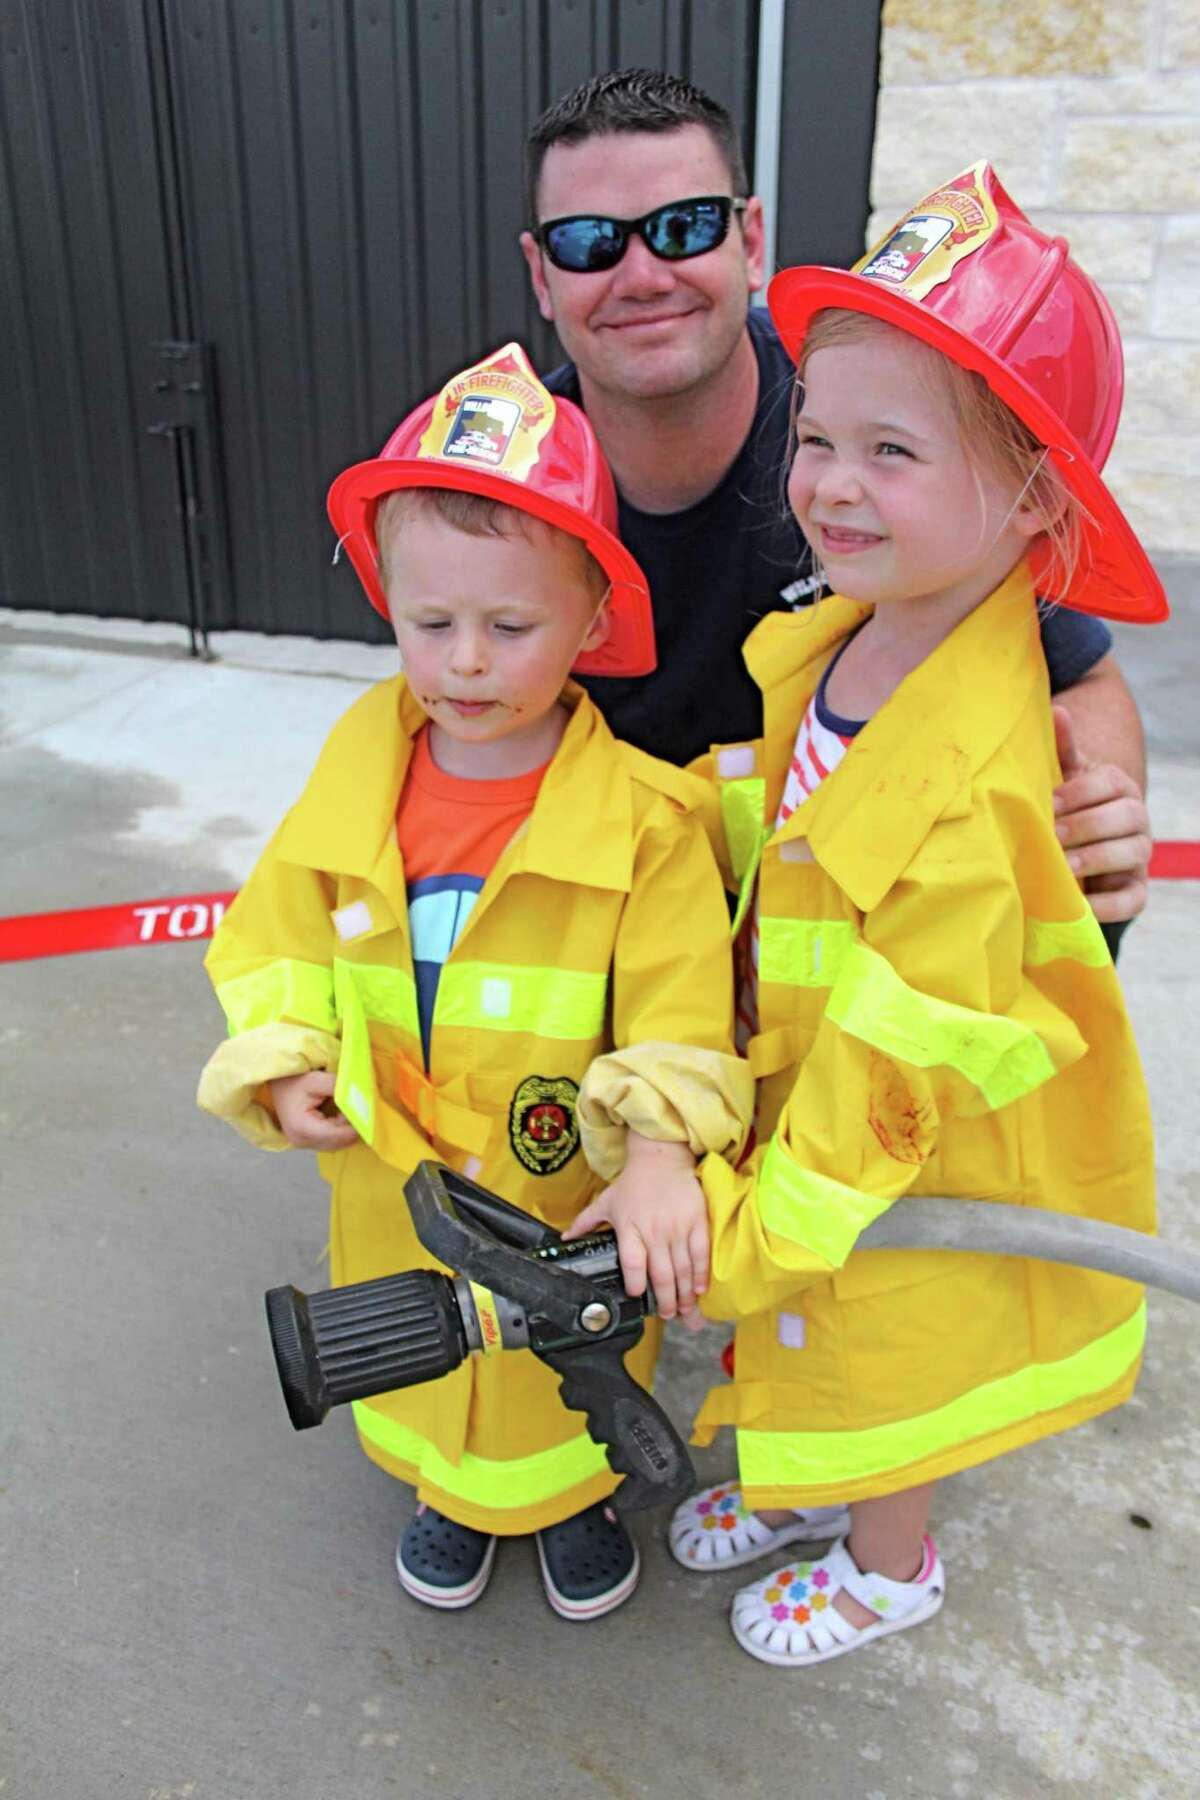 Willowfork Fire Station No. 2 firefighter Jarrett Ledget poses with Felix Smith, 2, and his sister, Bella Smith, 3. In conjunction with National Fire Safety Week, the Willowfork Fire Department will hold Open Houses at all three of its fire stations on Saturday, Oct. 12.